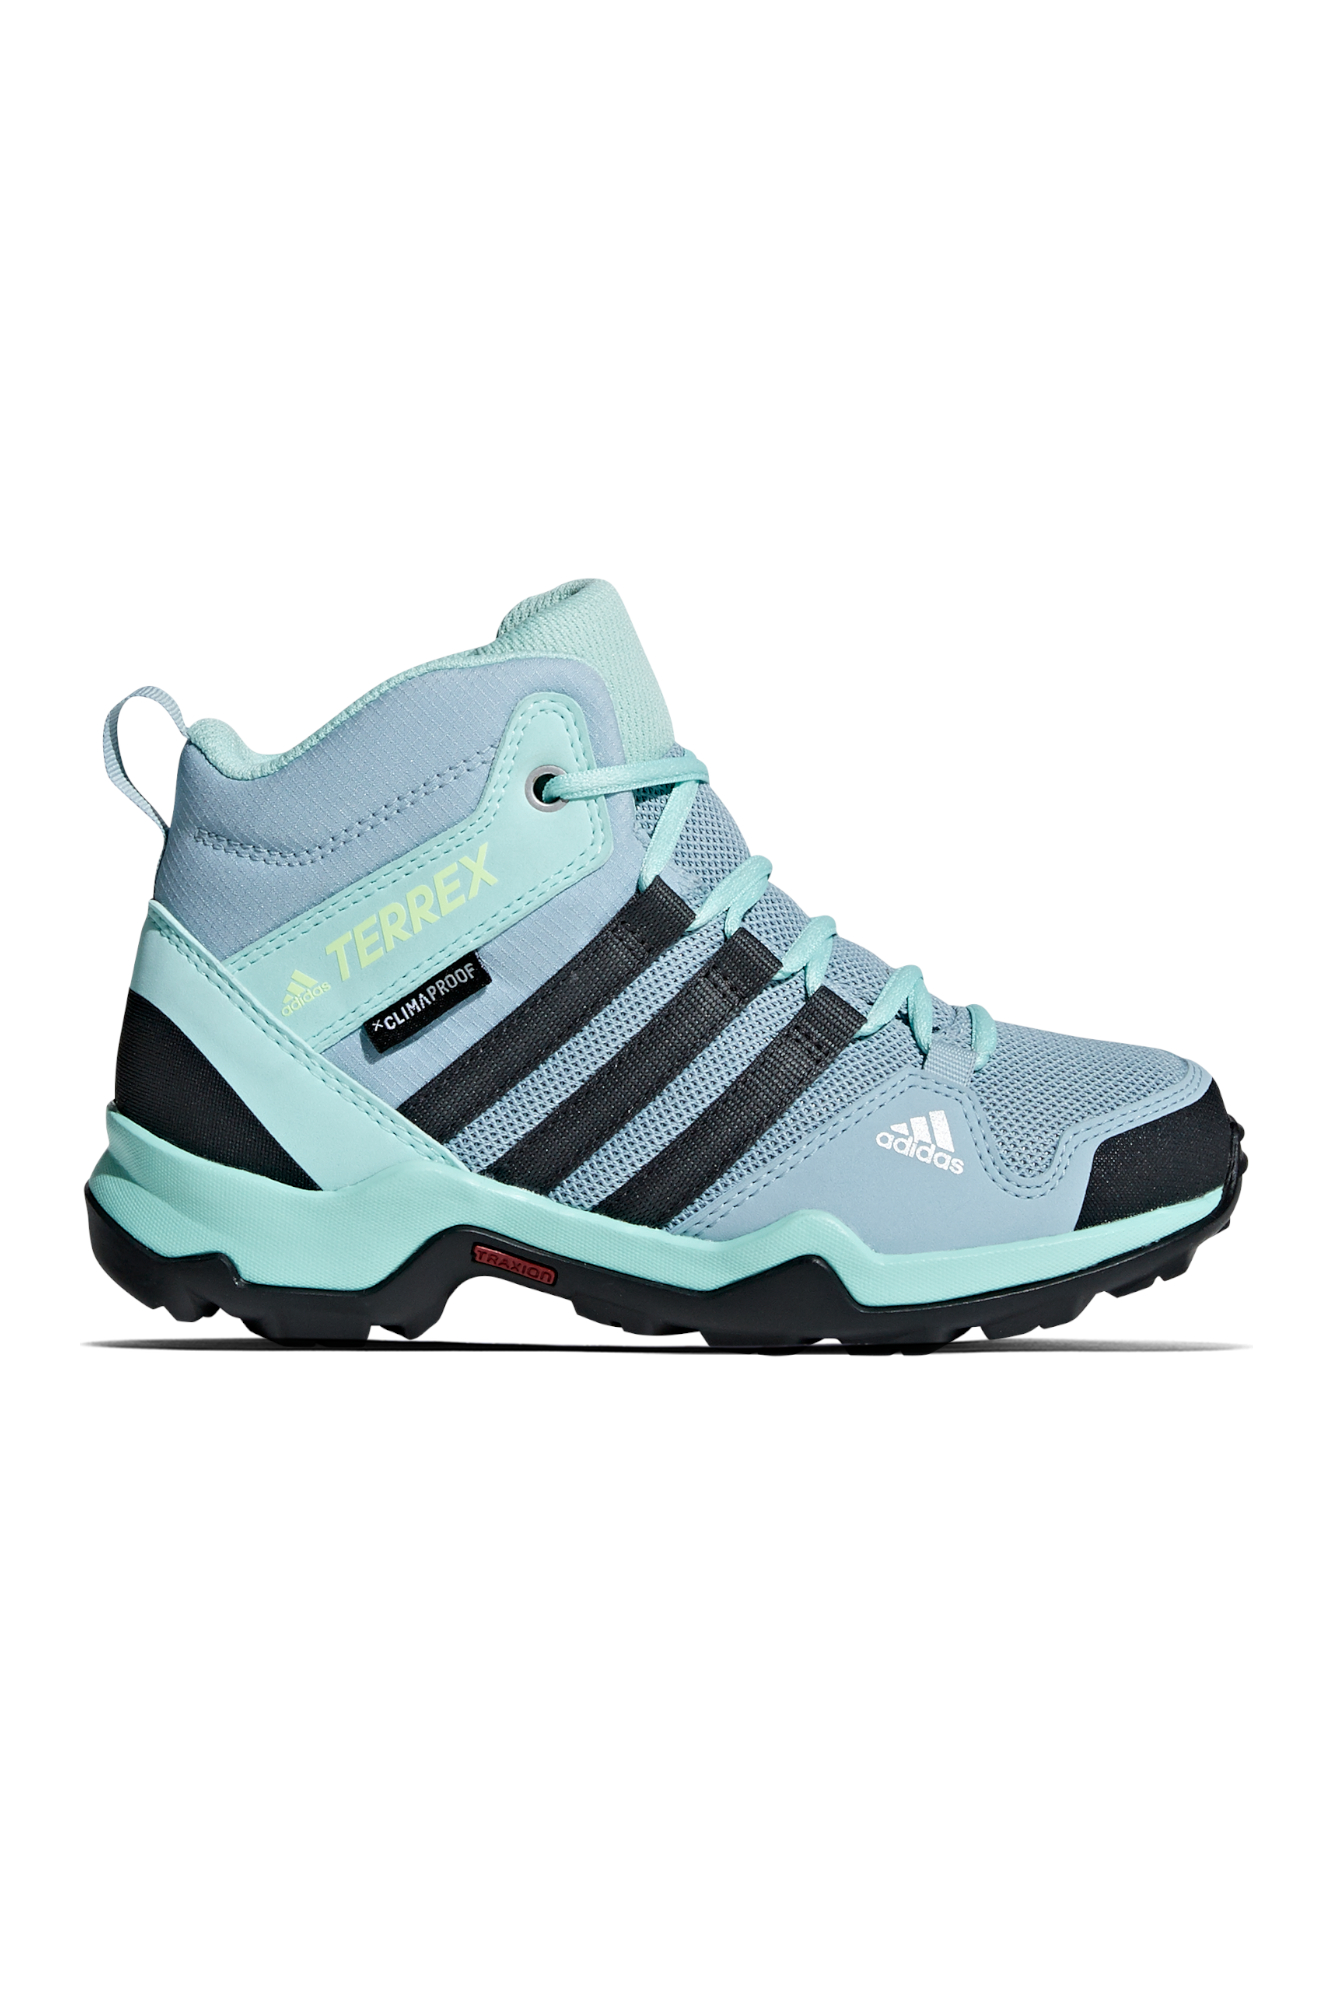 Buty adidas AX2R ClimaProof Mid BC0672 Outdoor Buty